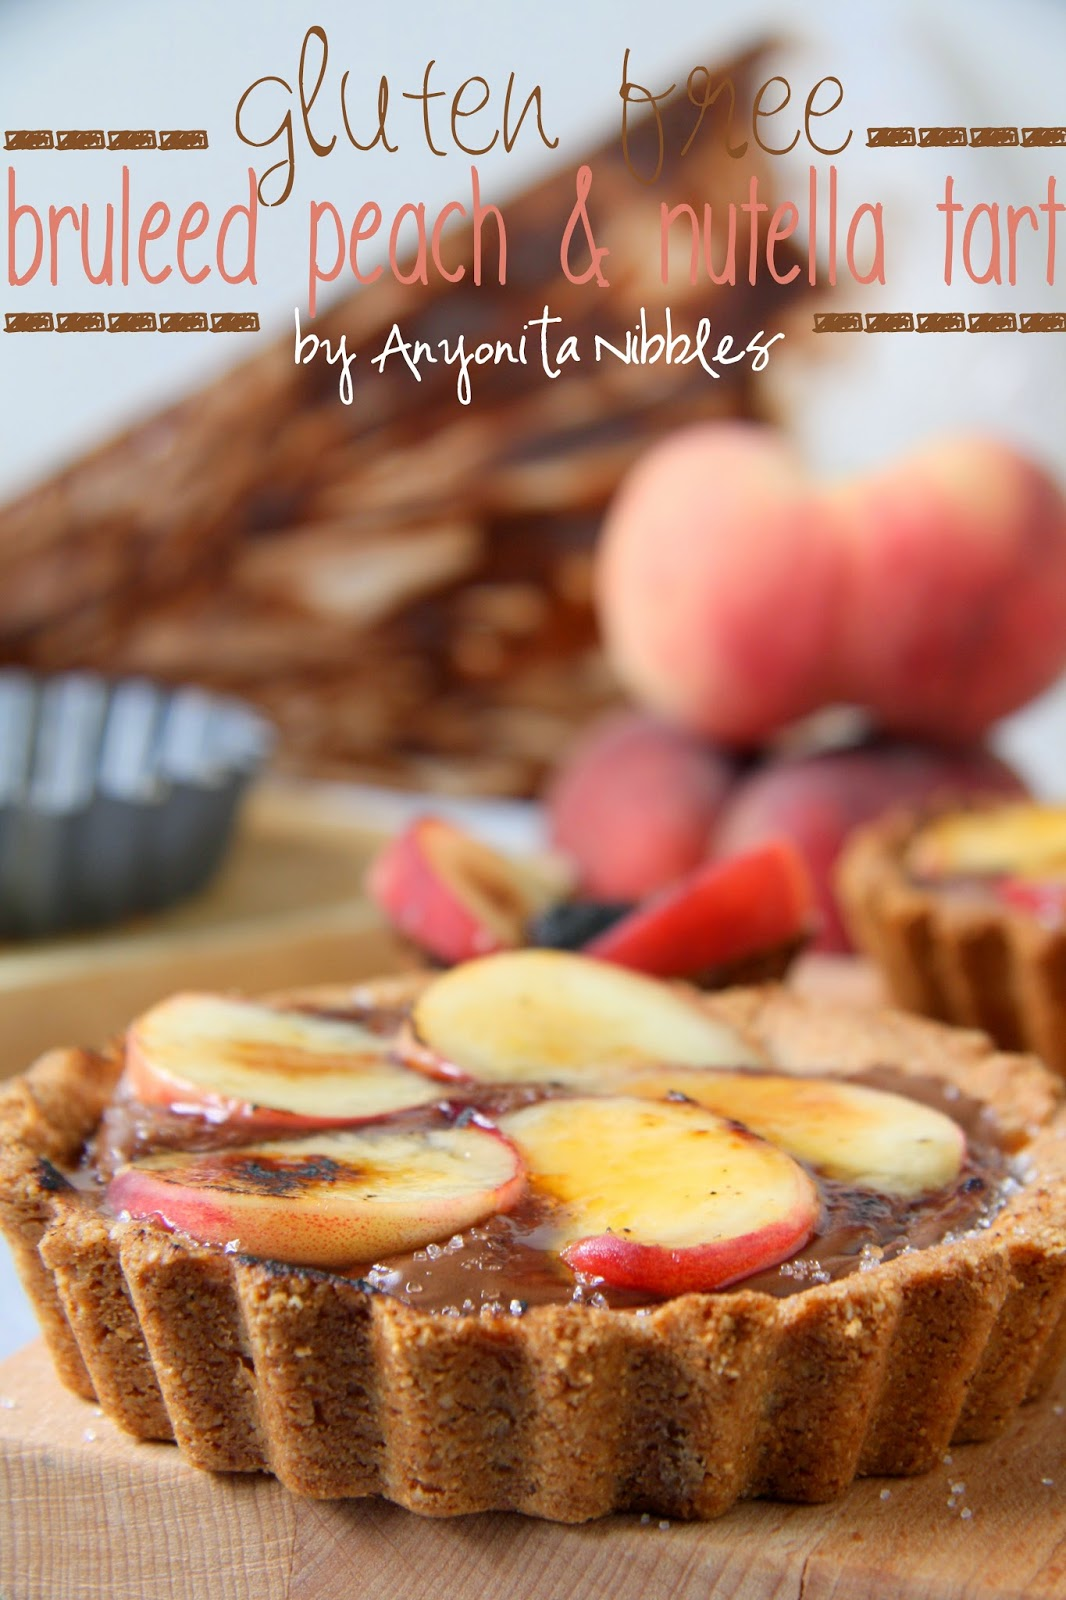 Gluten Free Bruleed Peac & Nutella Tarts from Anyonita Nibbles